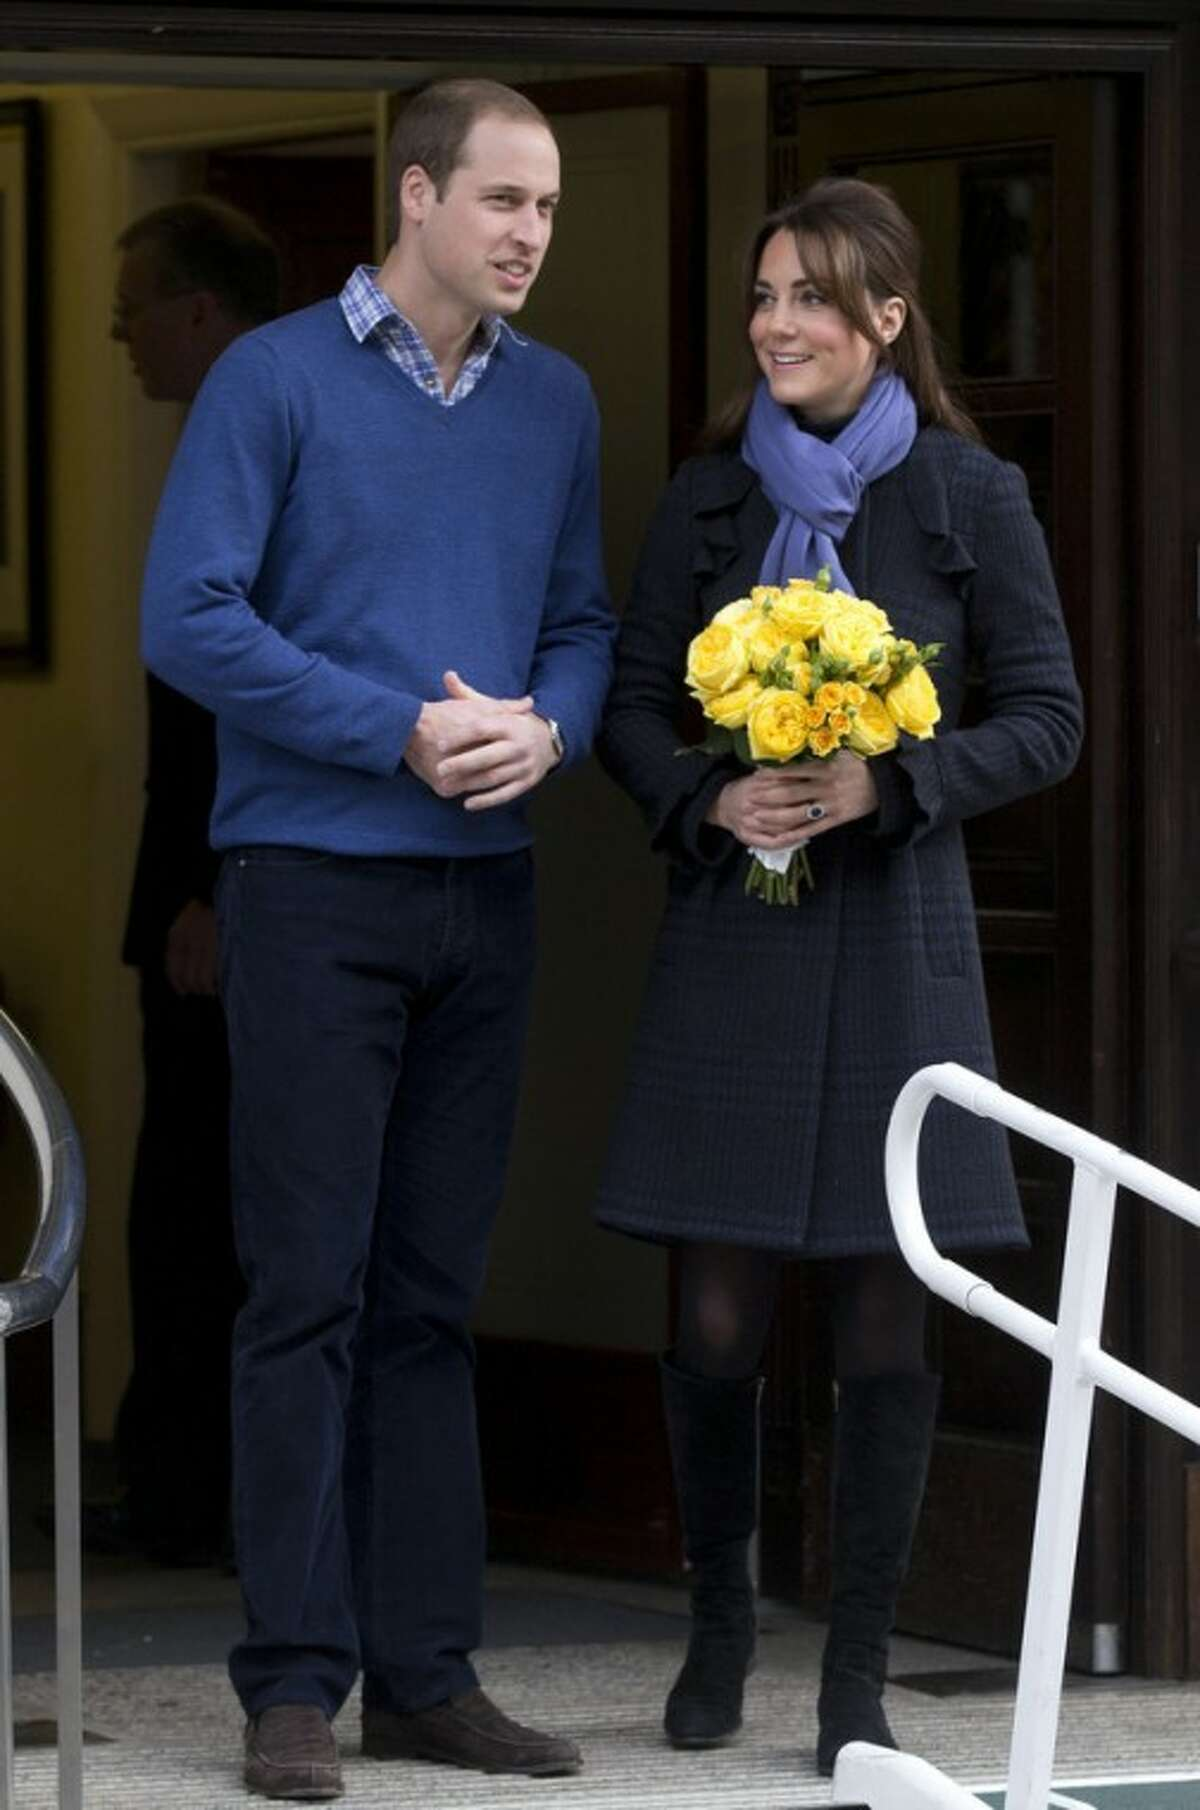 AP Photo/Alastair Grant Britain's Prince William stands next to his wife Kate, Duchess of Cambridge as she leaves the King Edward VII hospital in central London, Thursday, Dec. 6.